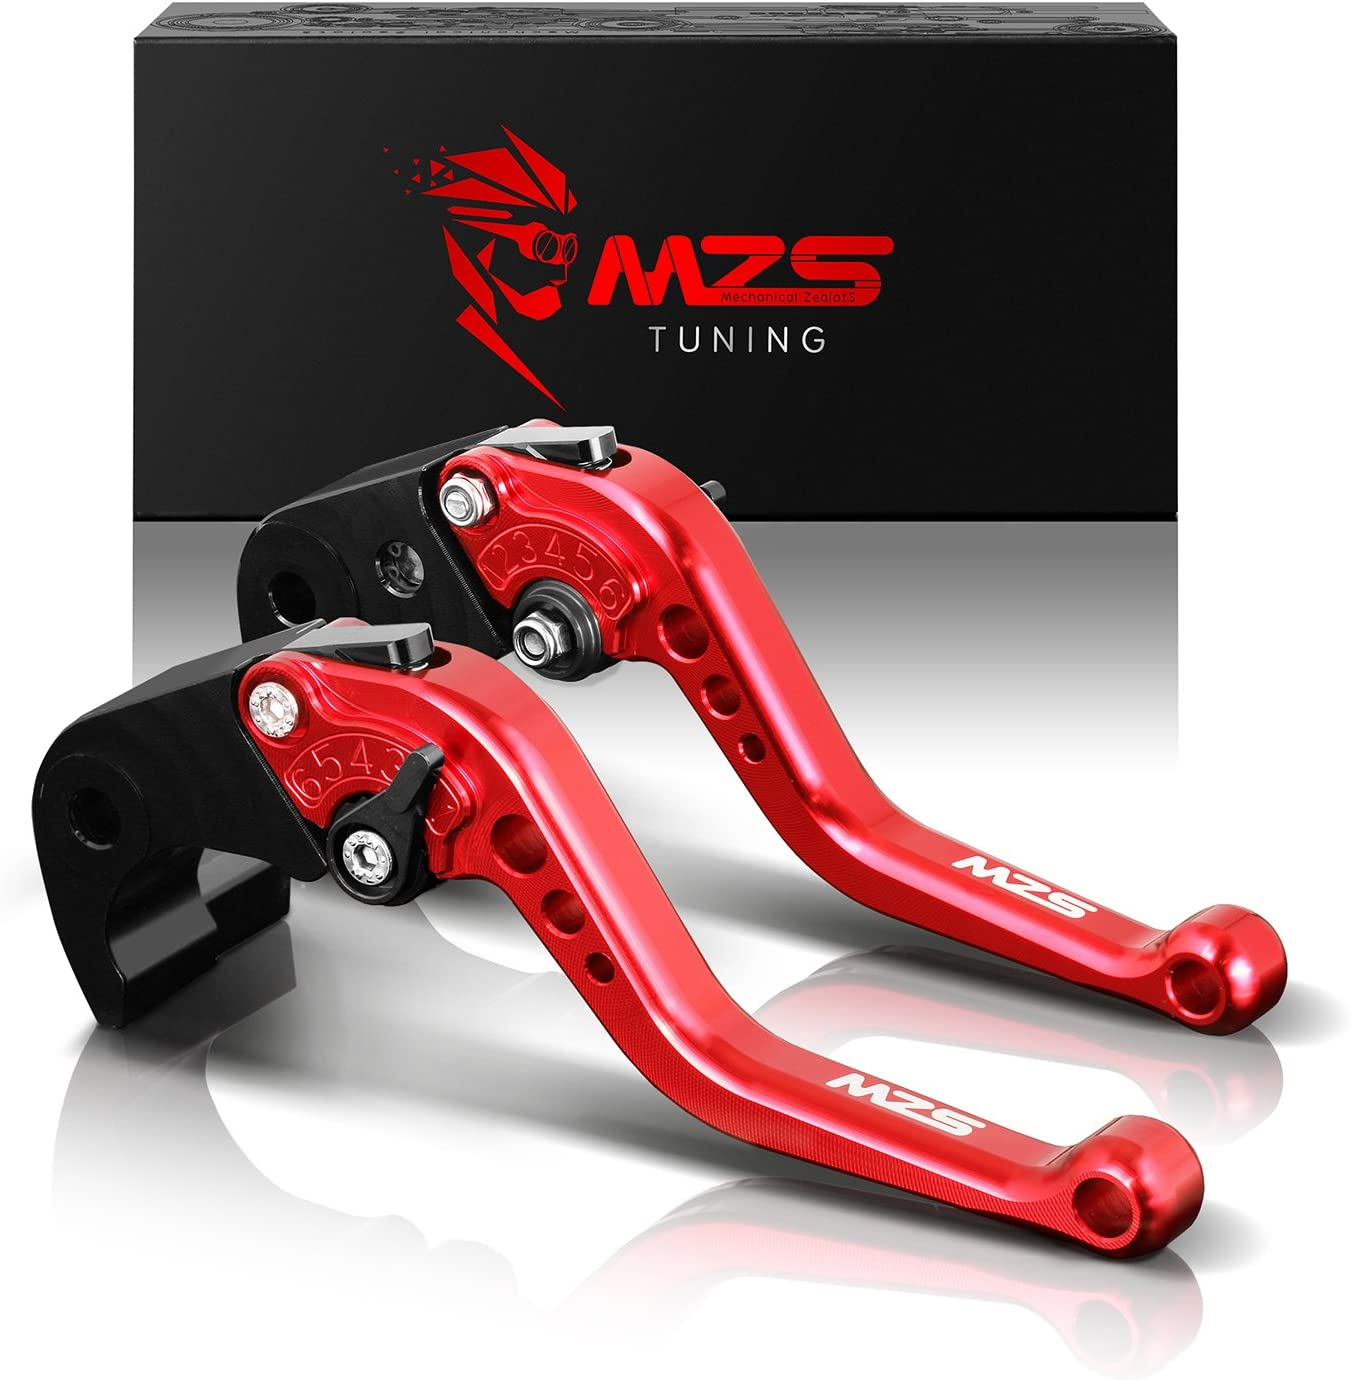 MZS Short Brake Clutch Levers Compatible with Kawasaki Versys 650 KLE650 2015-2019| Versys 1000 KLZ1000 2015-2019| Vulcan S 650 2015-2019| NINJA 650R 2017-2019| Z650 Z900 ER-6F 2017-2019 Red